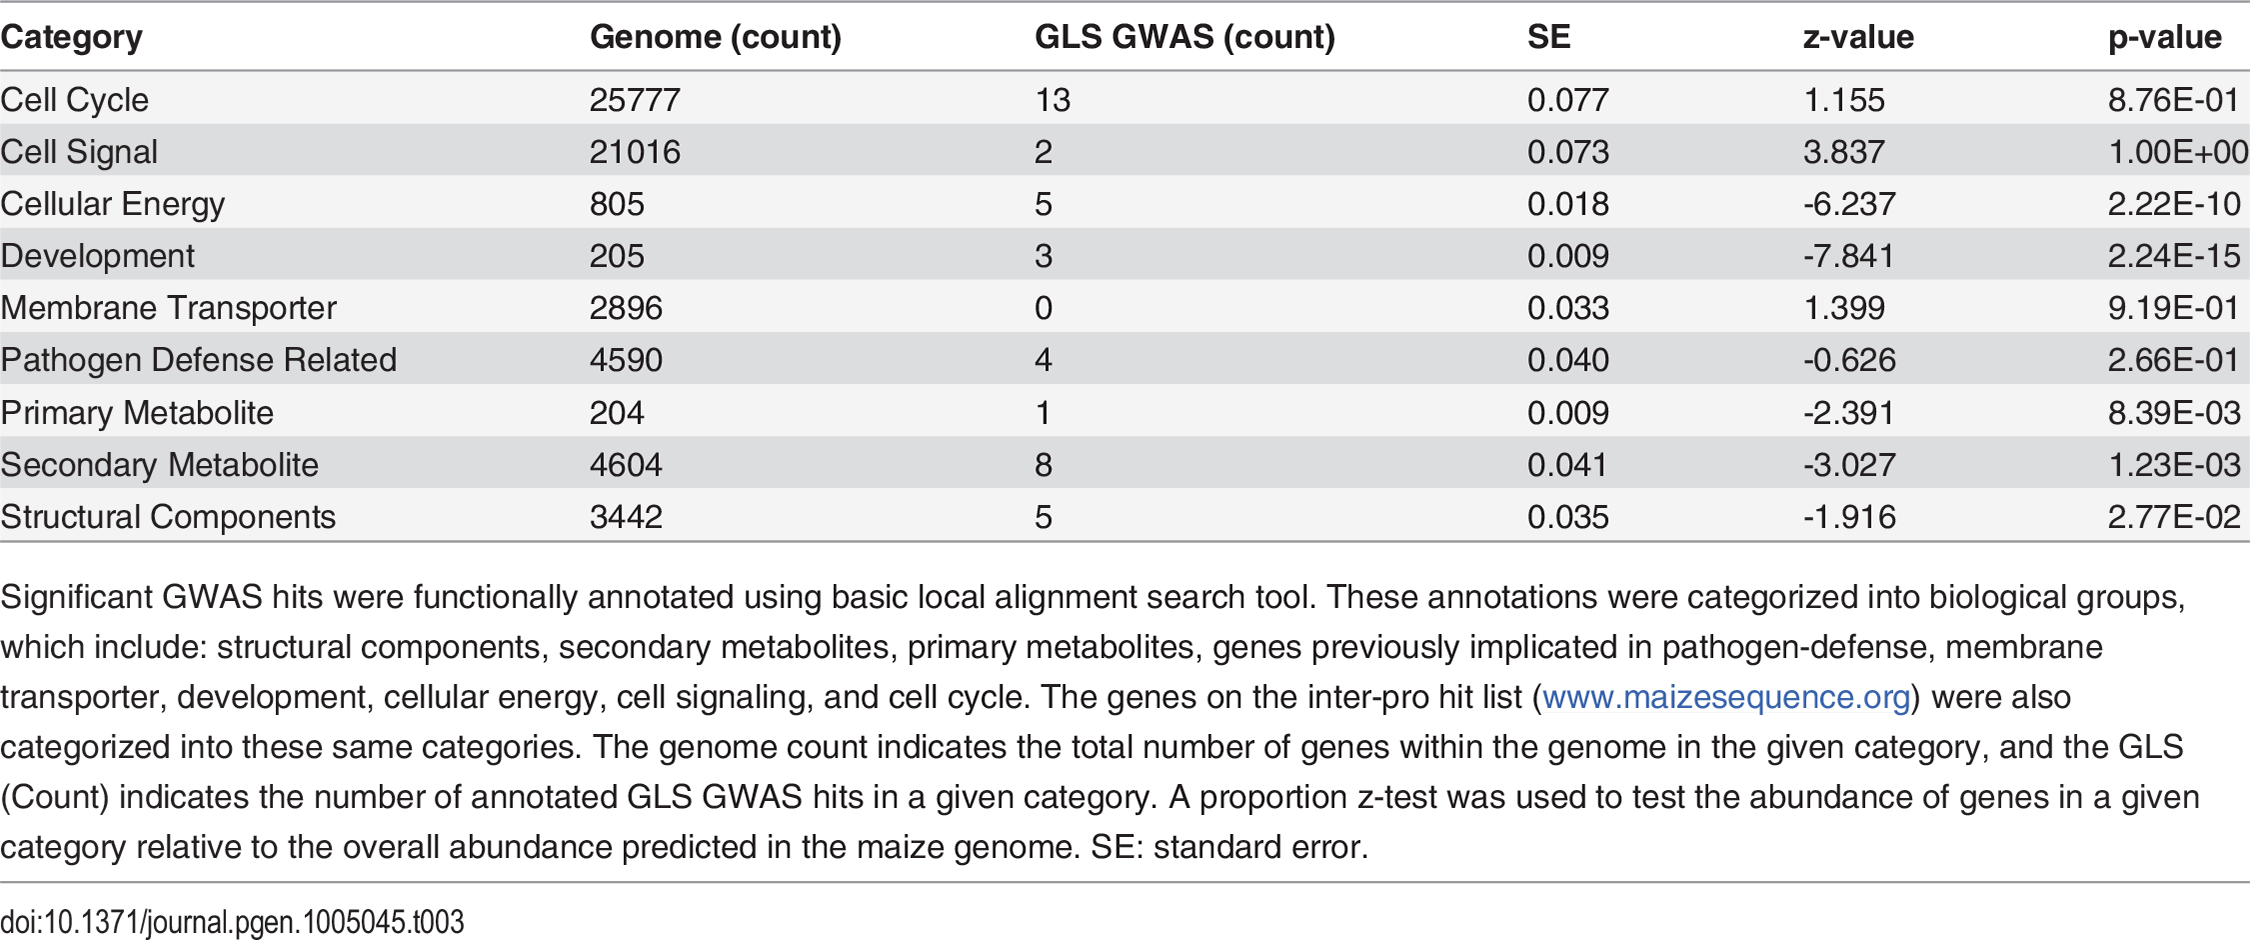 Summary statistics of functionally annotated and categorized genome wide association hits.